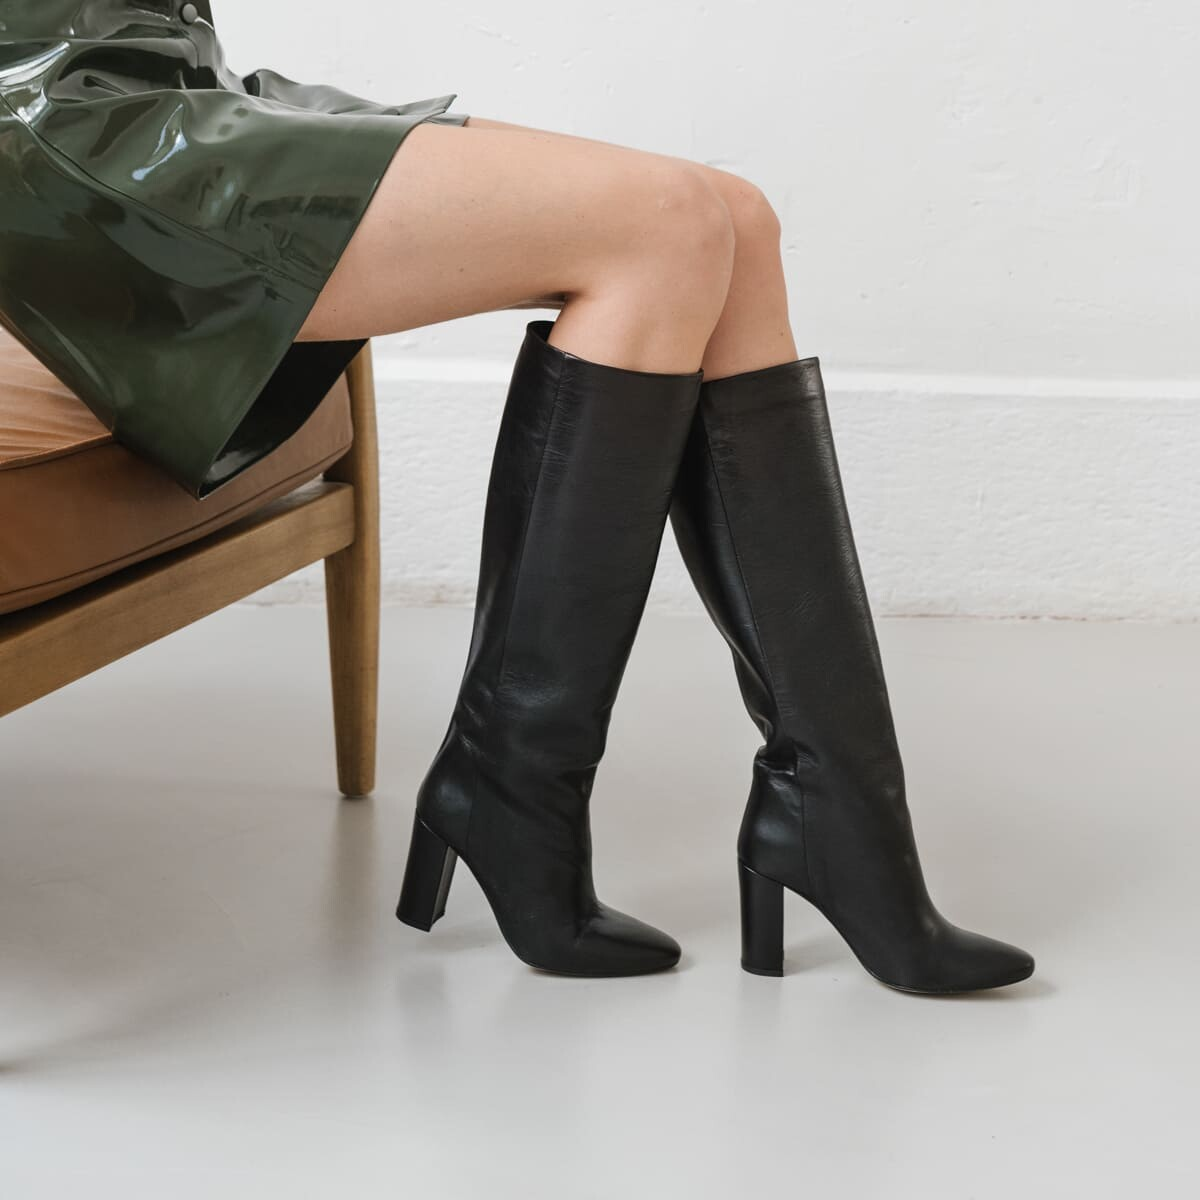 High boots with square heel in black leather - Jonak noir